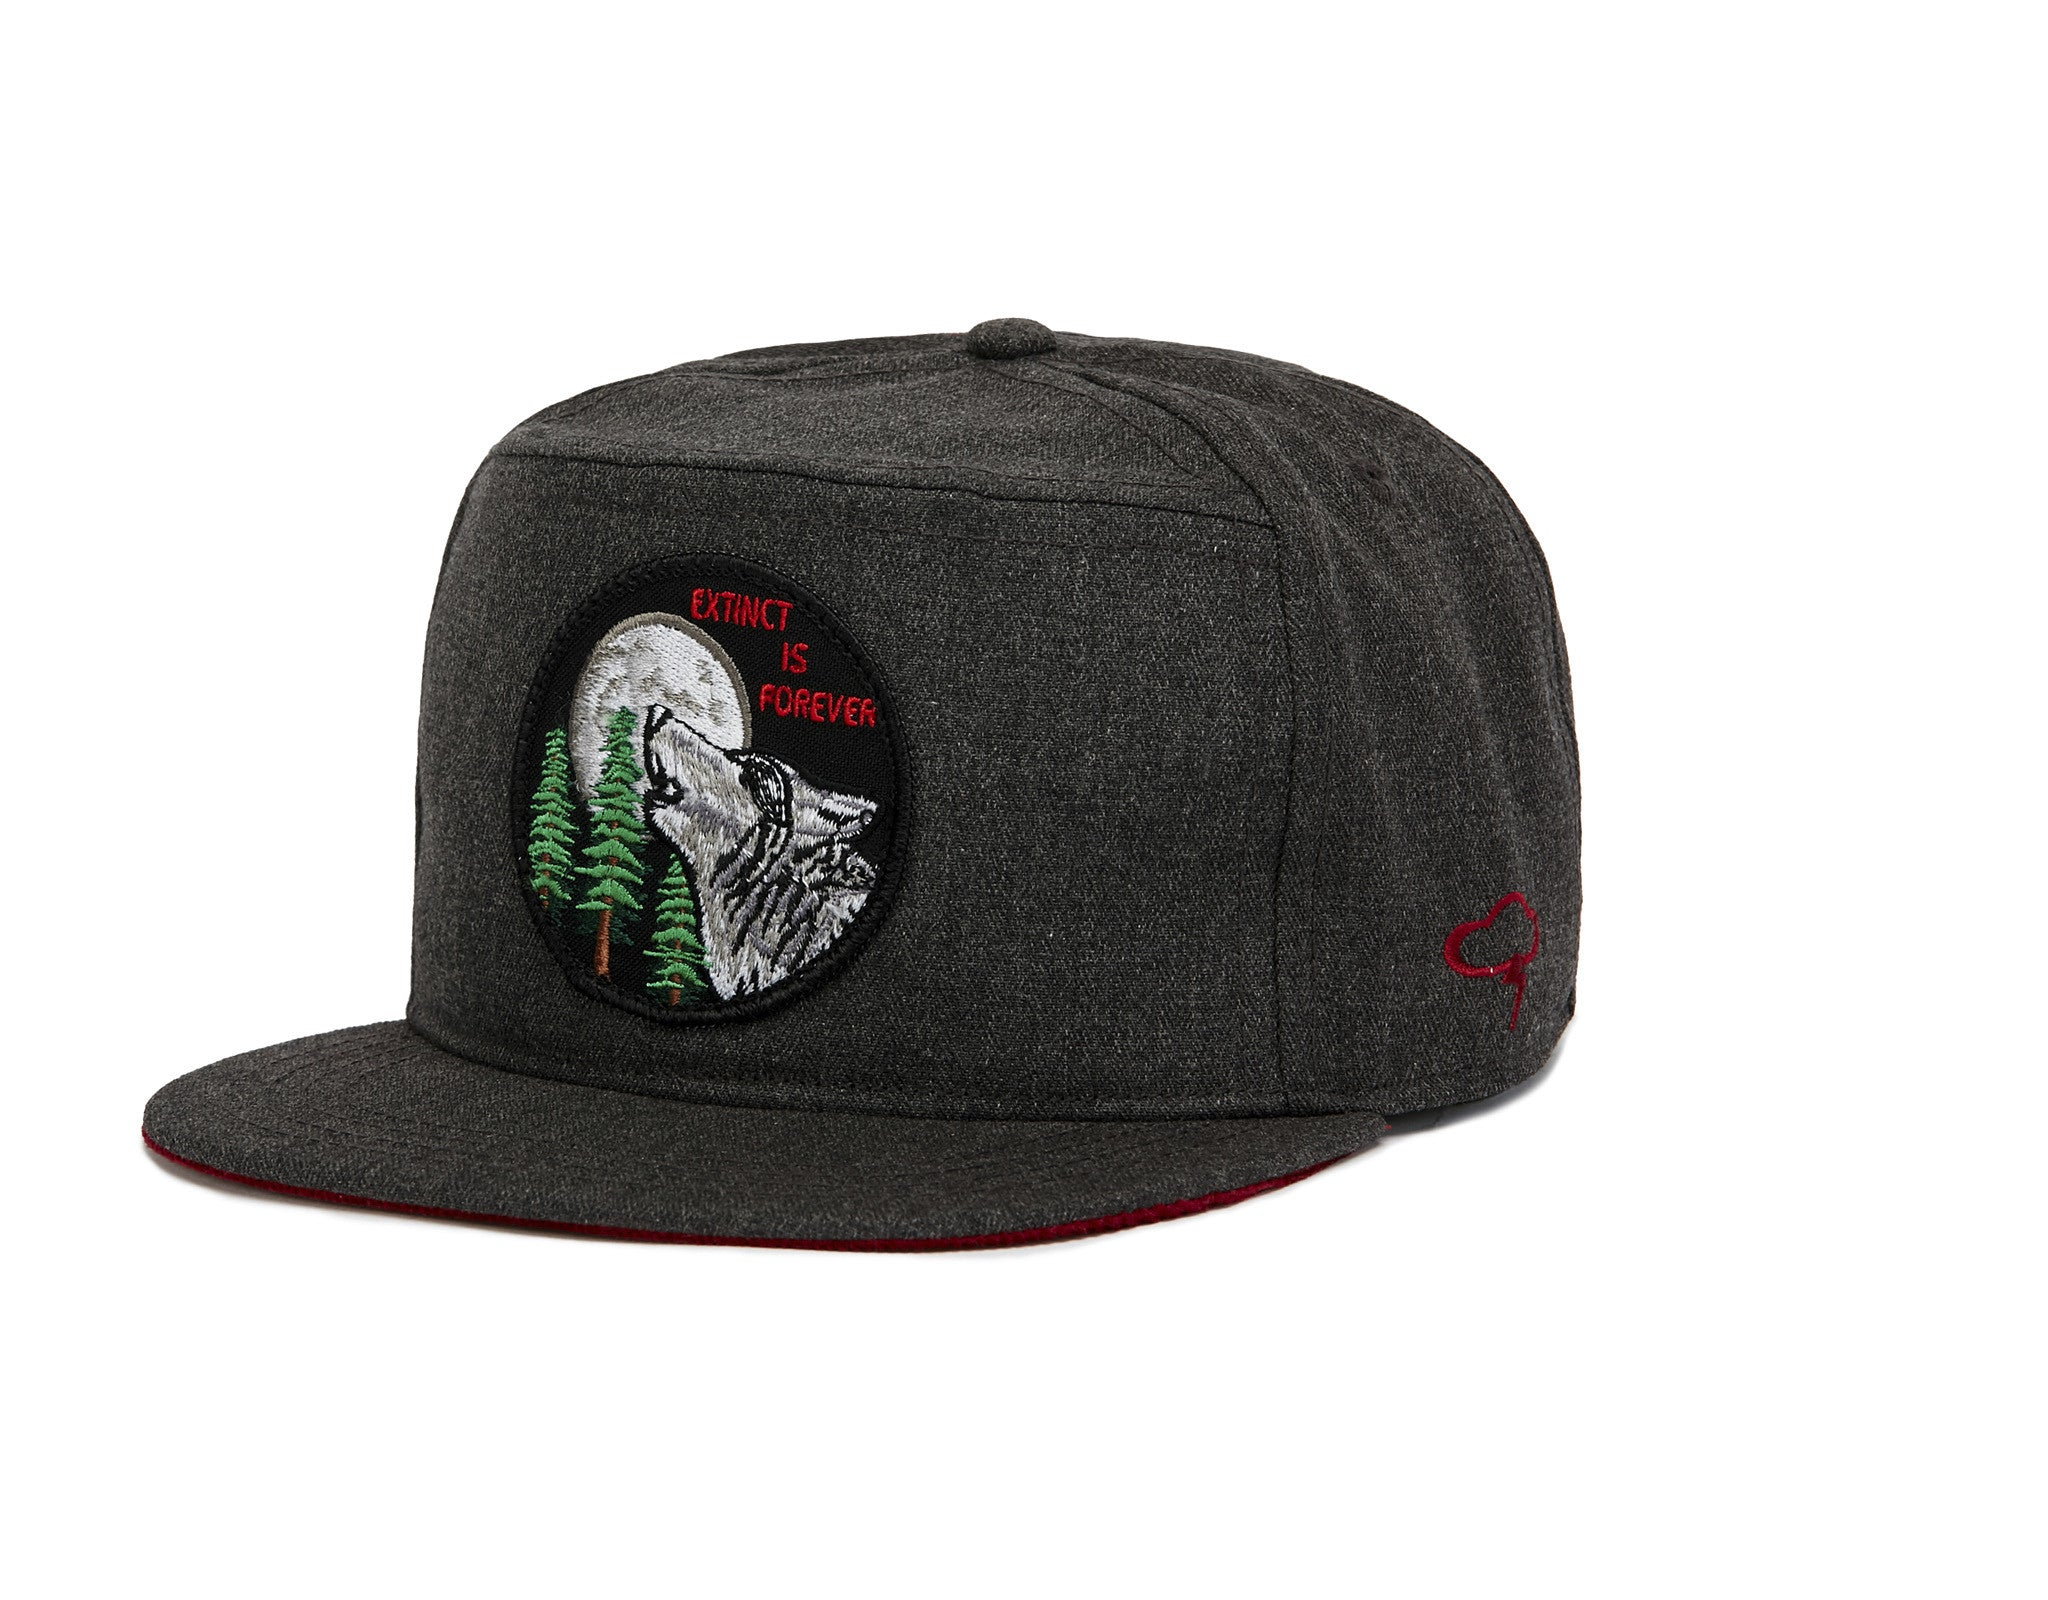 EXTINCT IS FOREVER Snapback